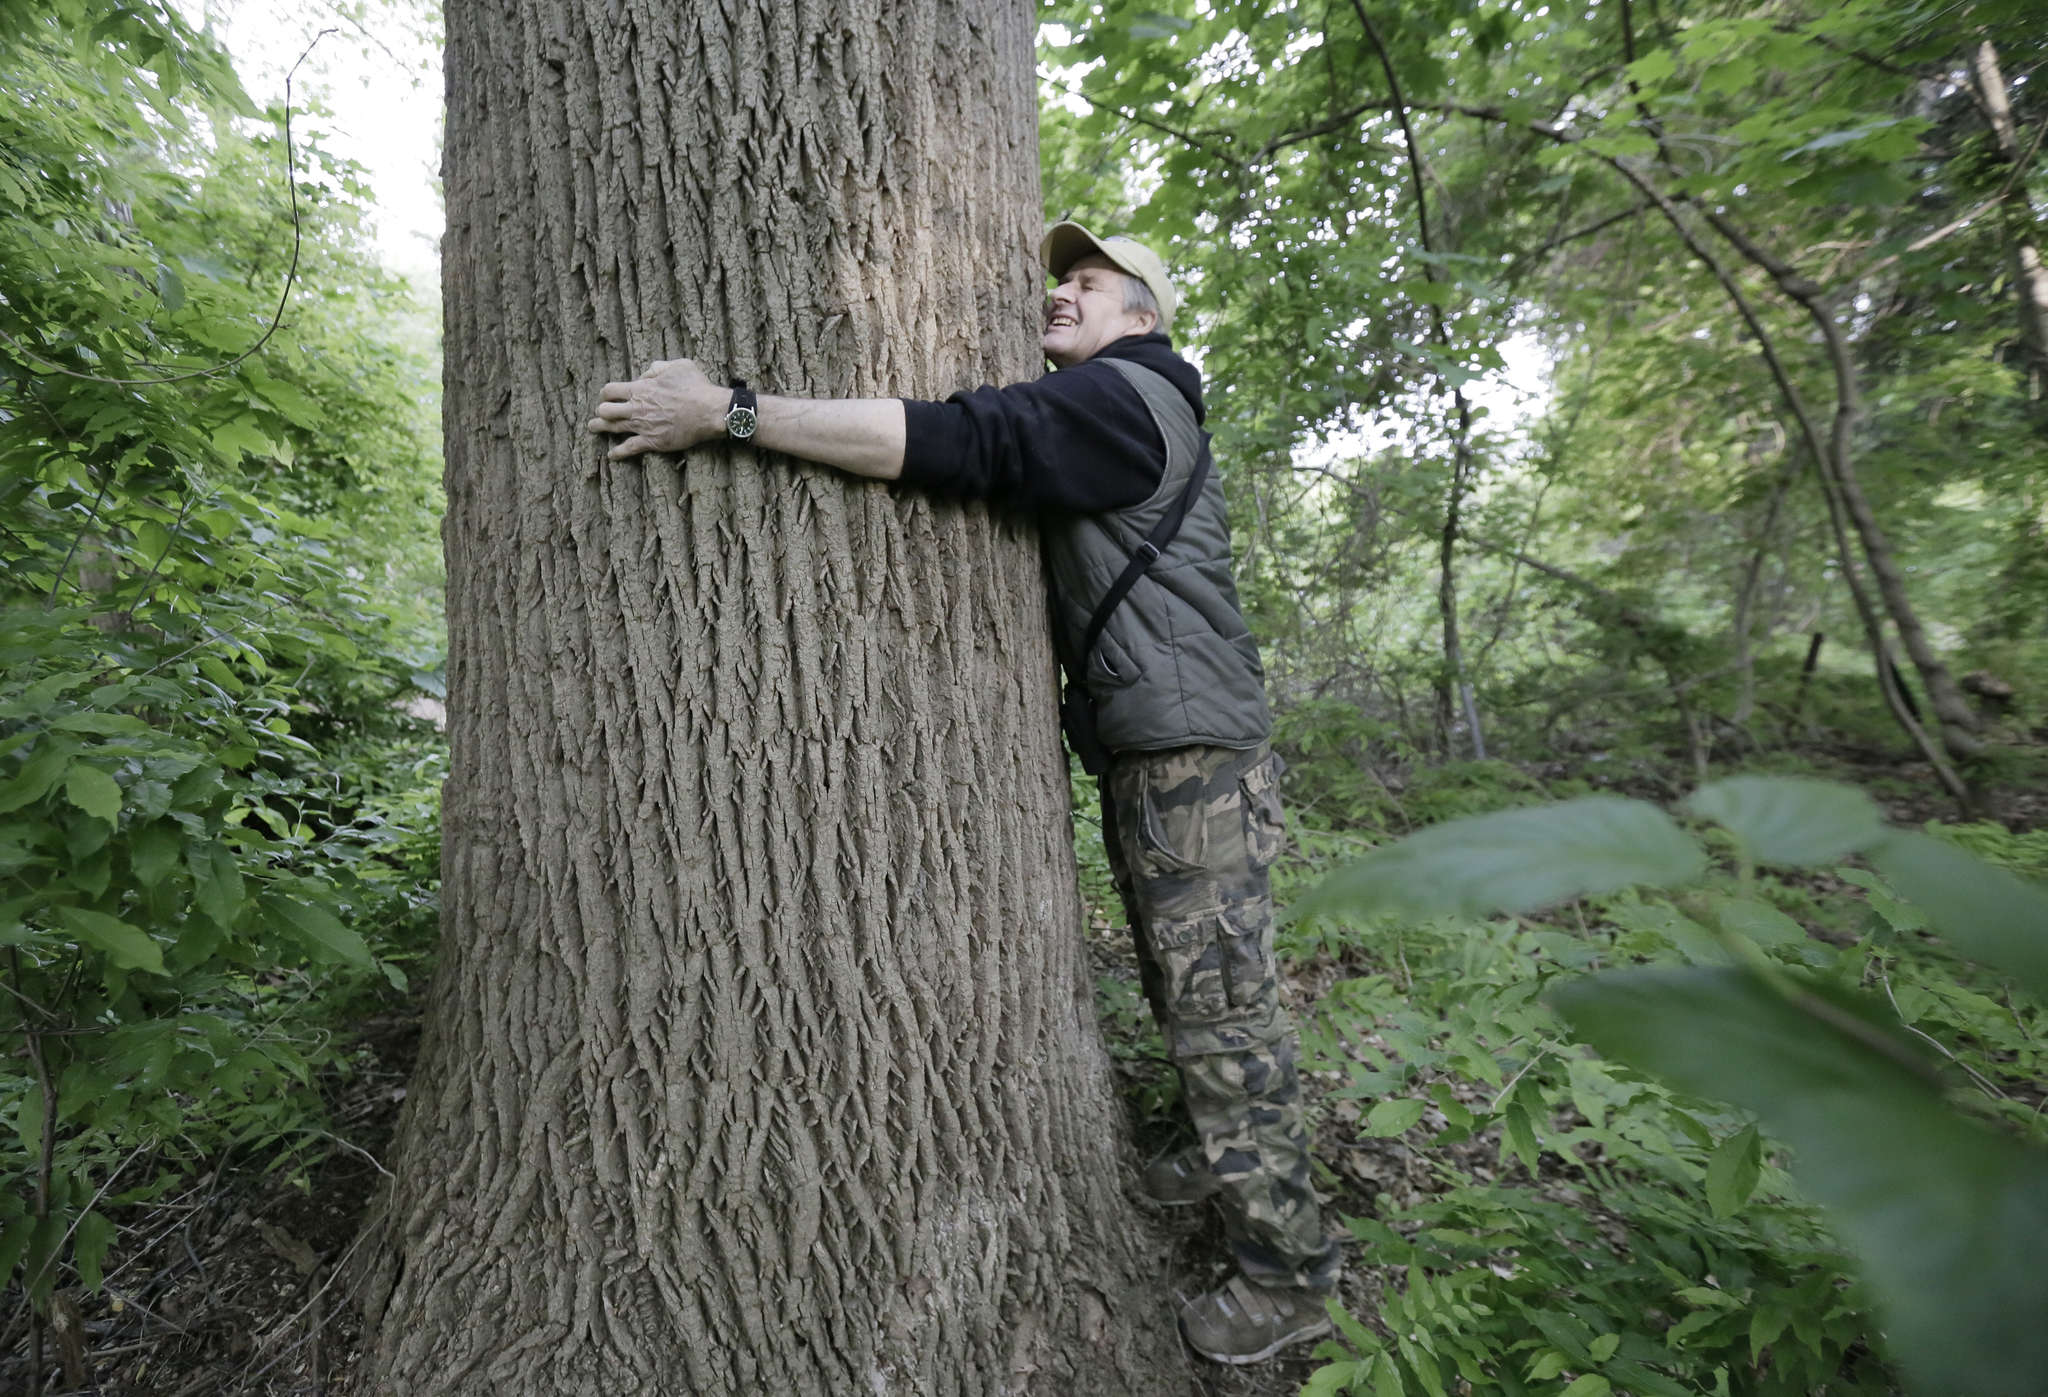 Lloyd B. Shaw of Laurel Springs tries to wrap his arms around a giant tree in Whitman Woods.